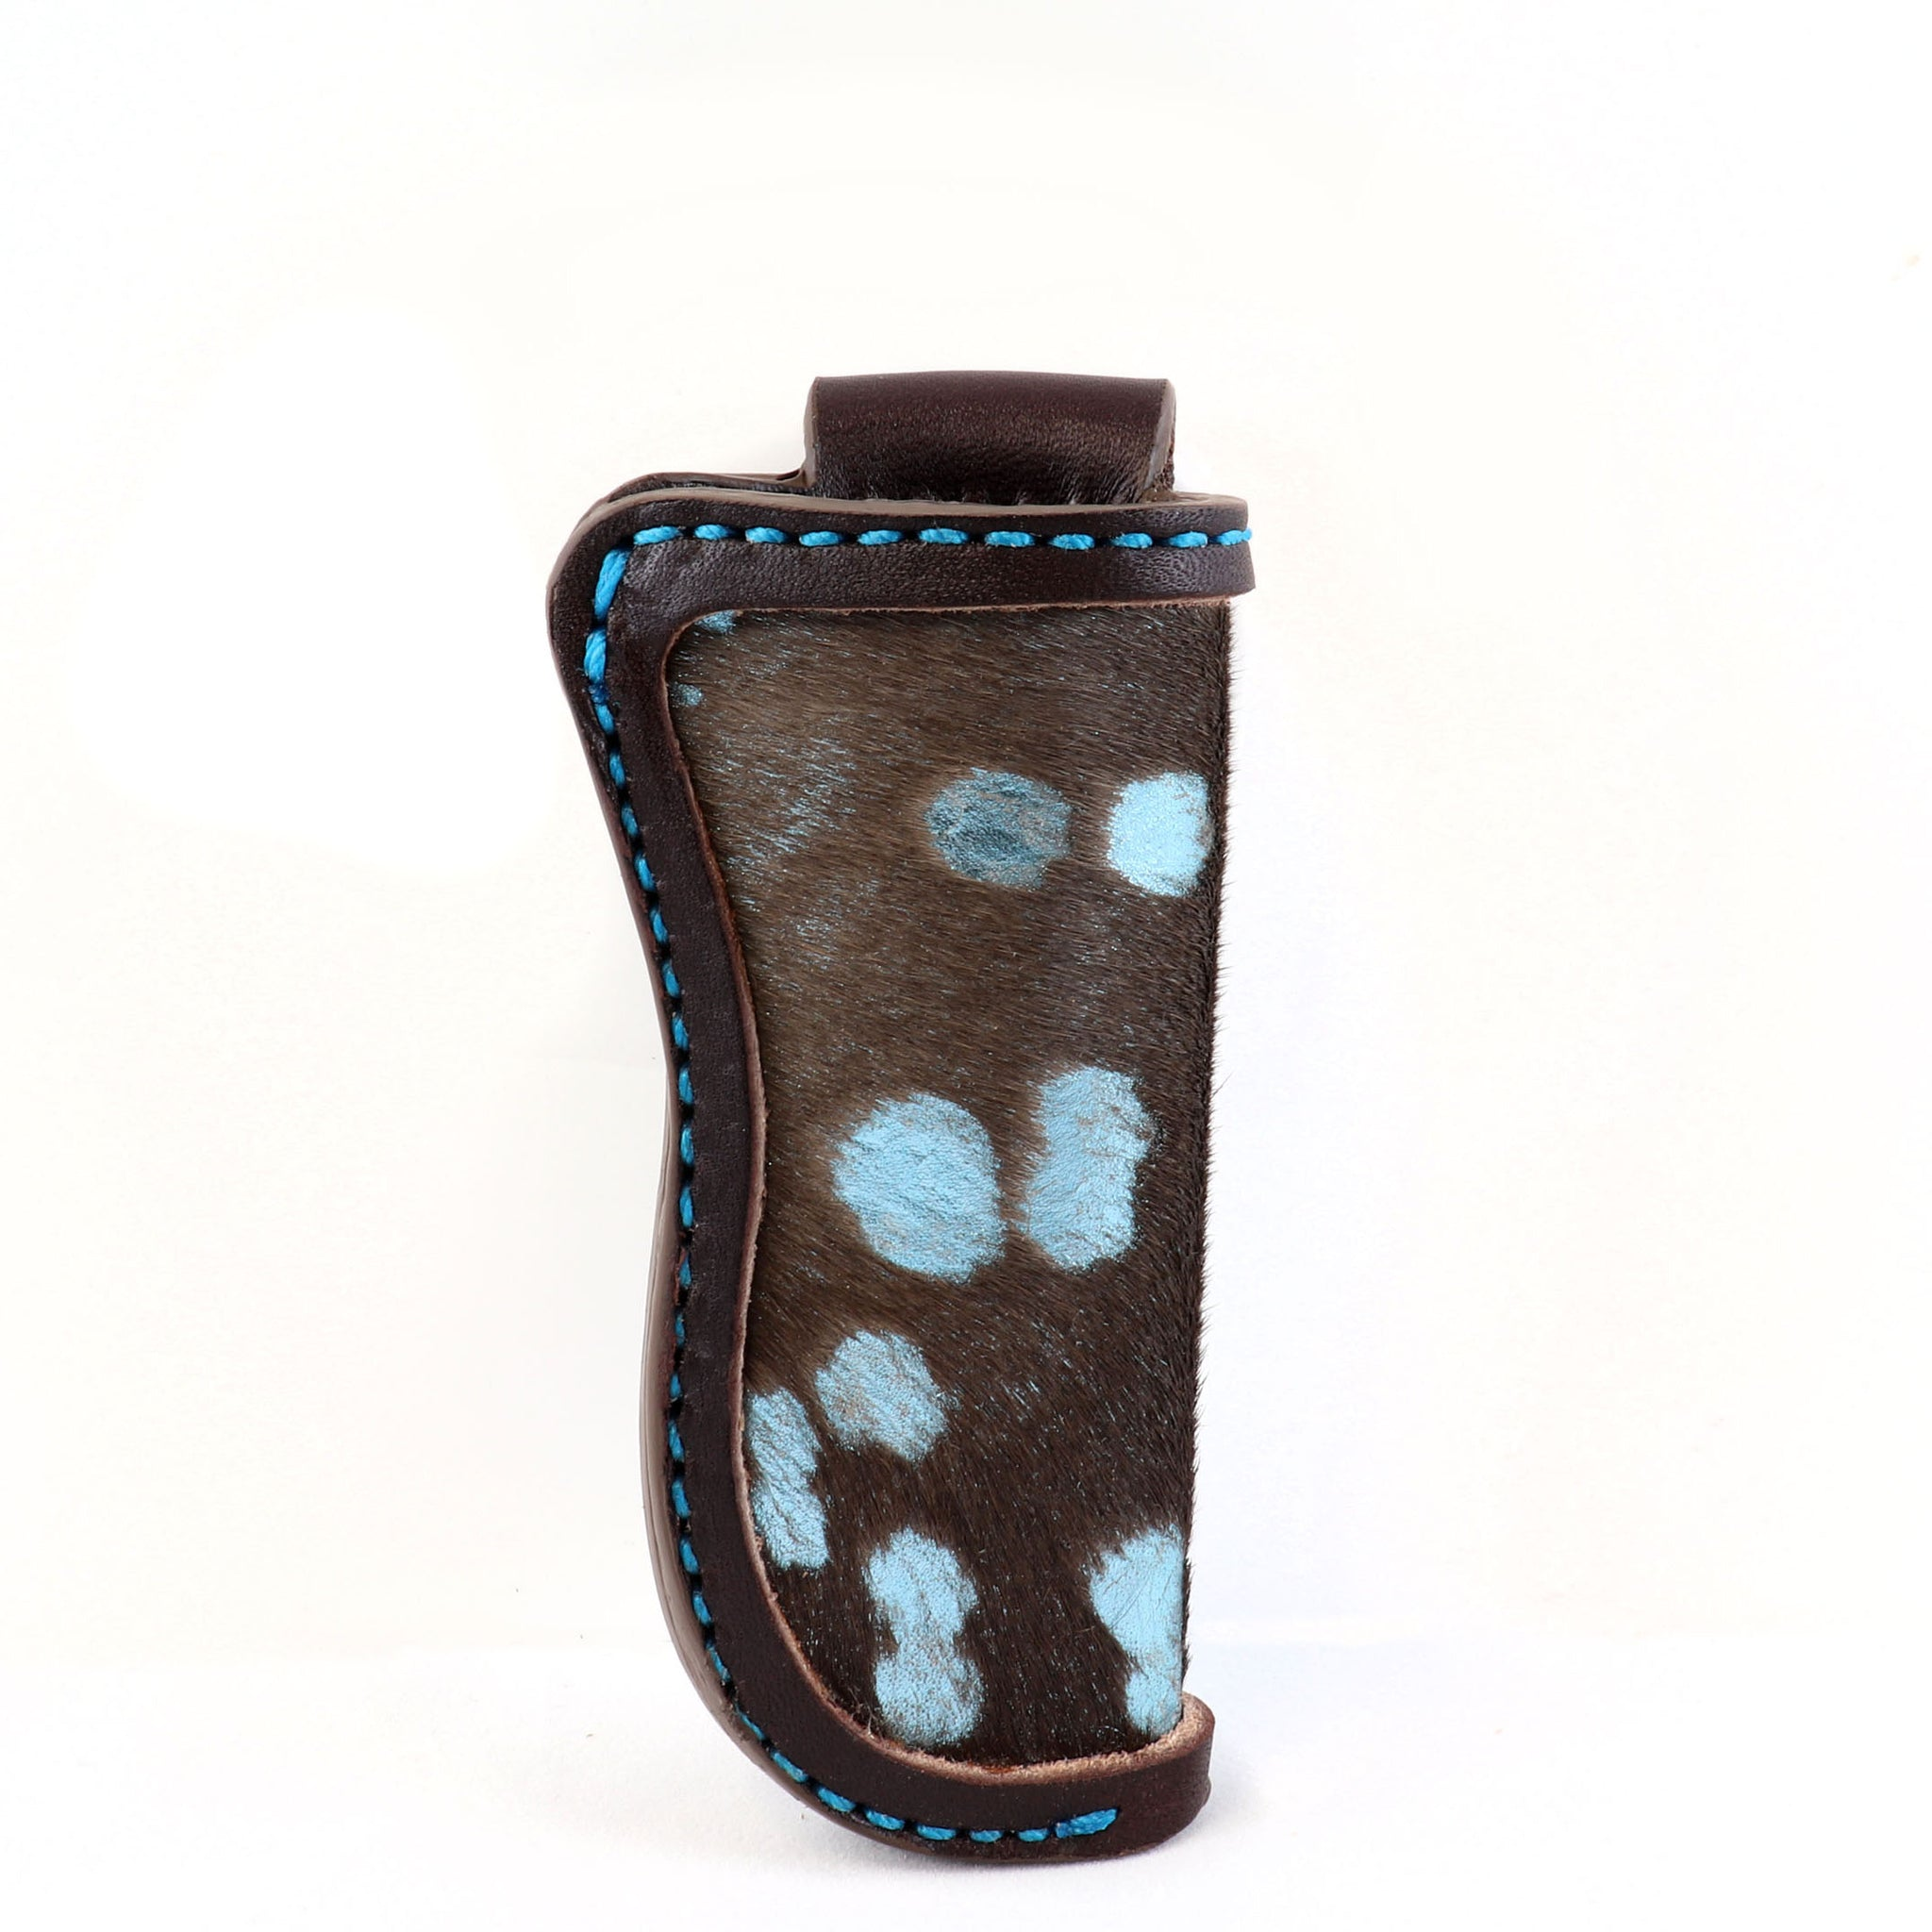 Knife Sheath with Hair-on Calfskin and Metallic Blue highlights